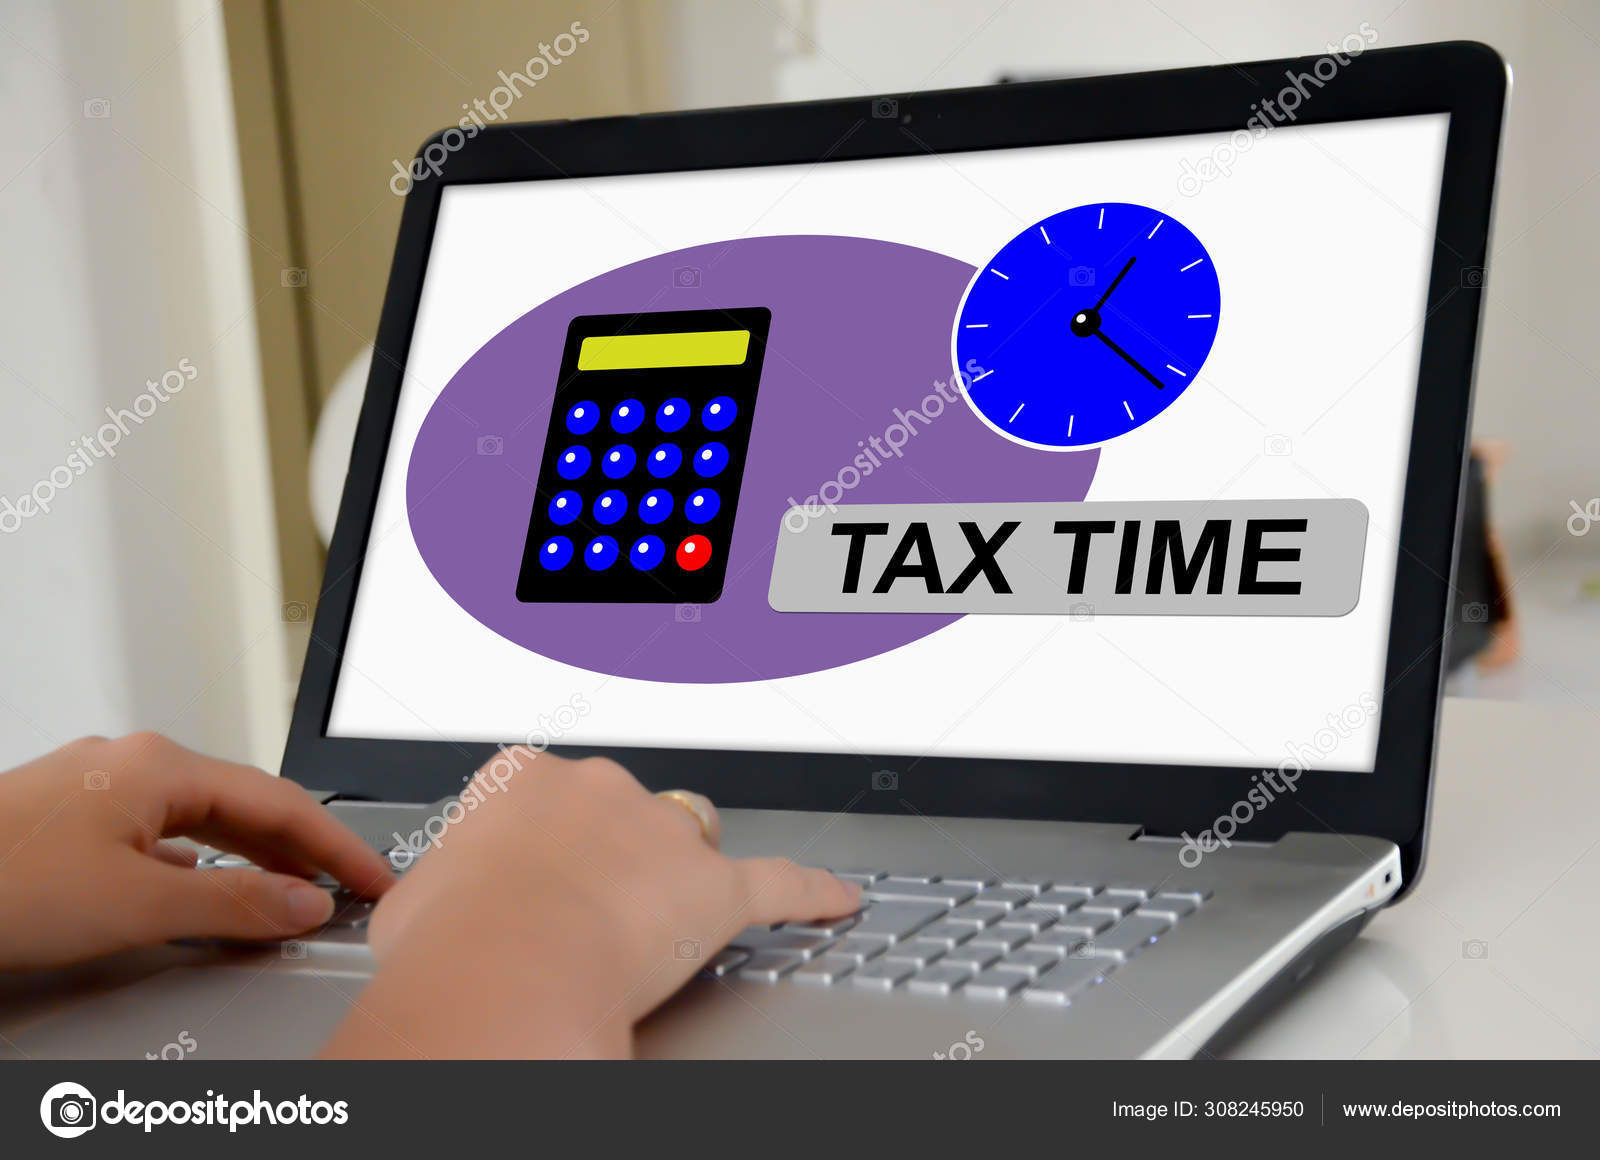 Tax Time Concept On A Laptop Screen Stock Photo C Thodonal 308245950